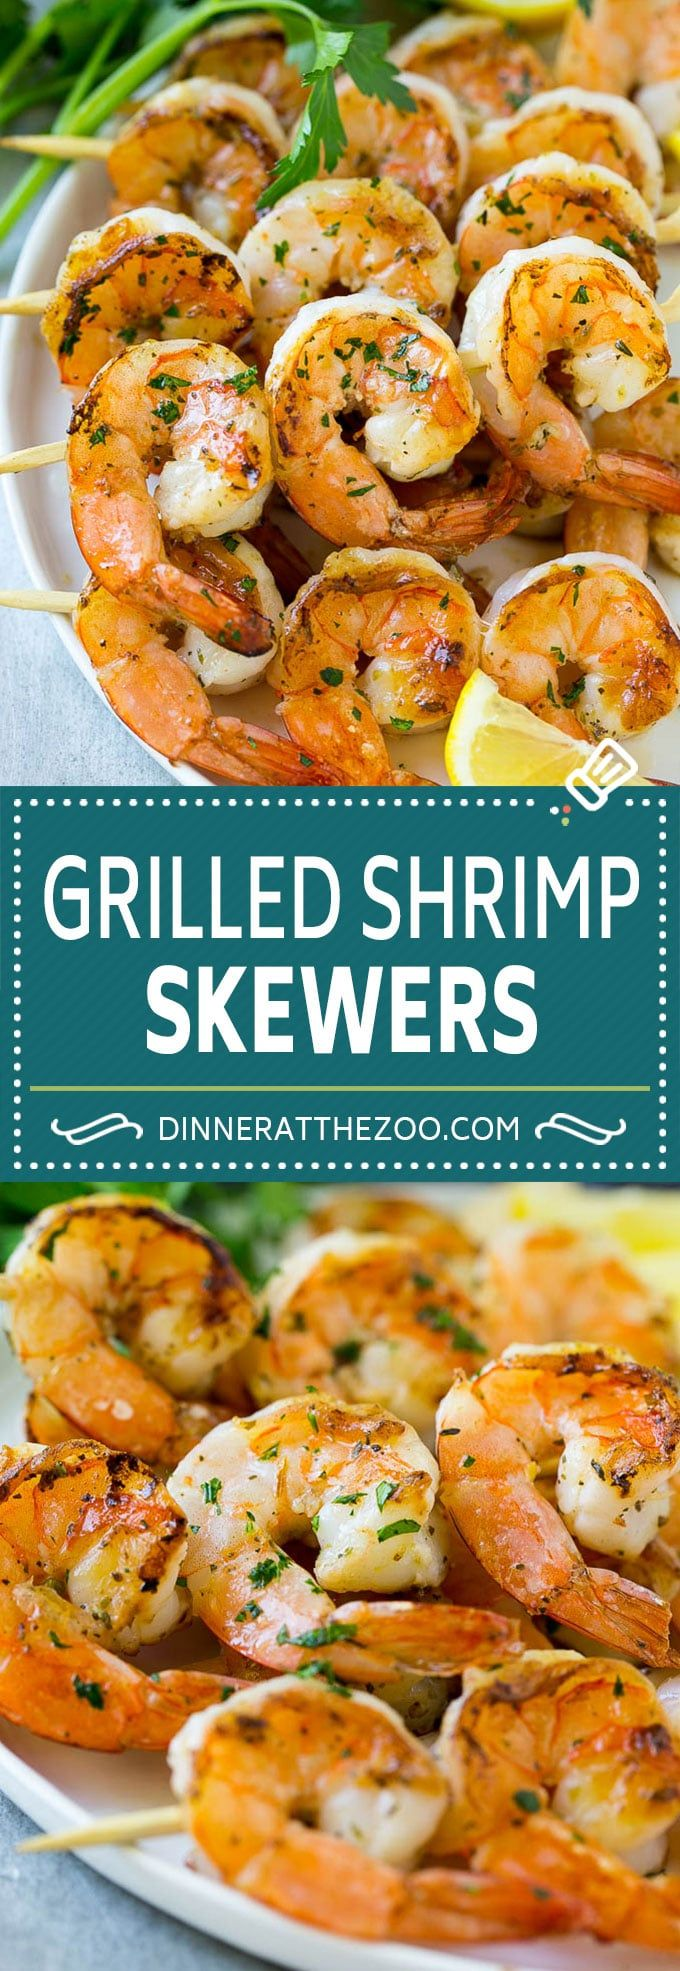 Grilled Shrimp Skewers - Dinner at the Zoo